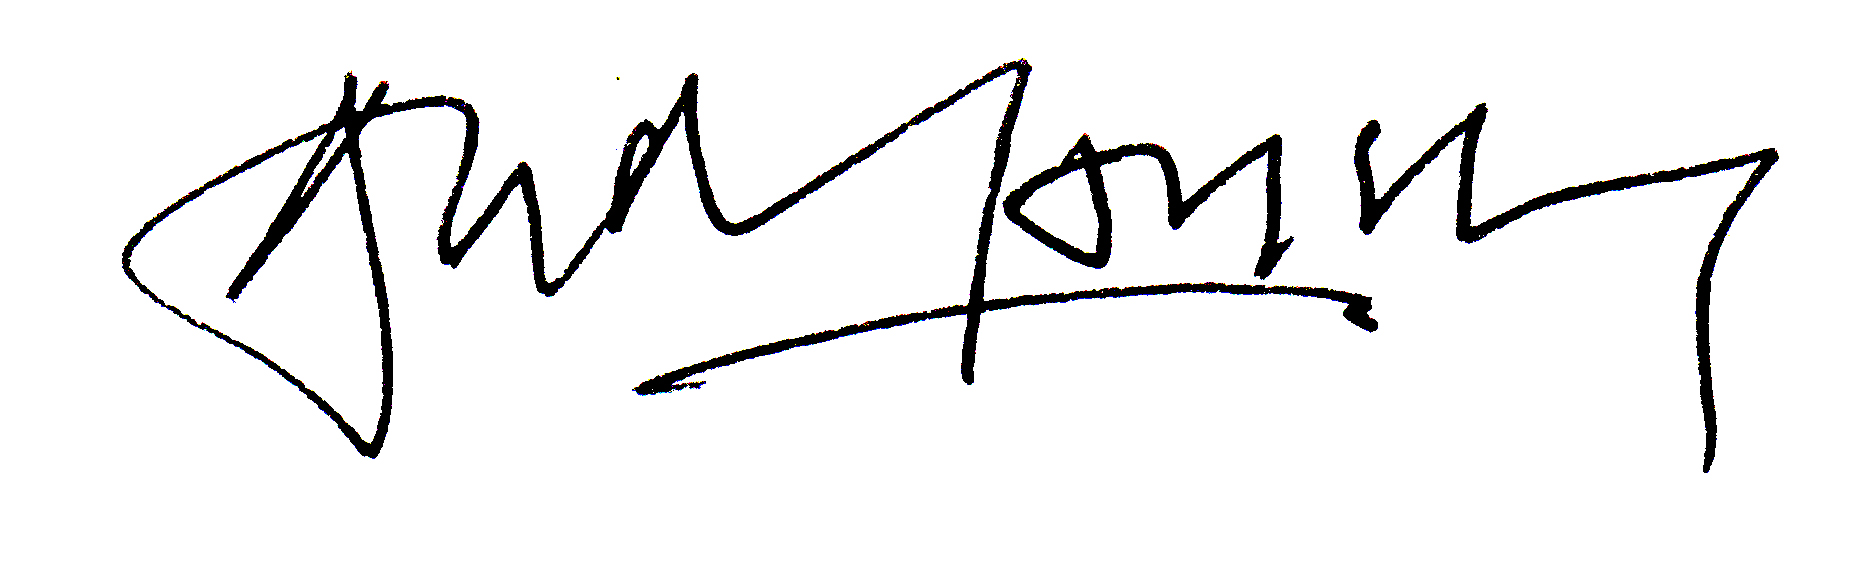 Andrew Lansley Signature